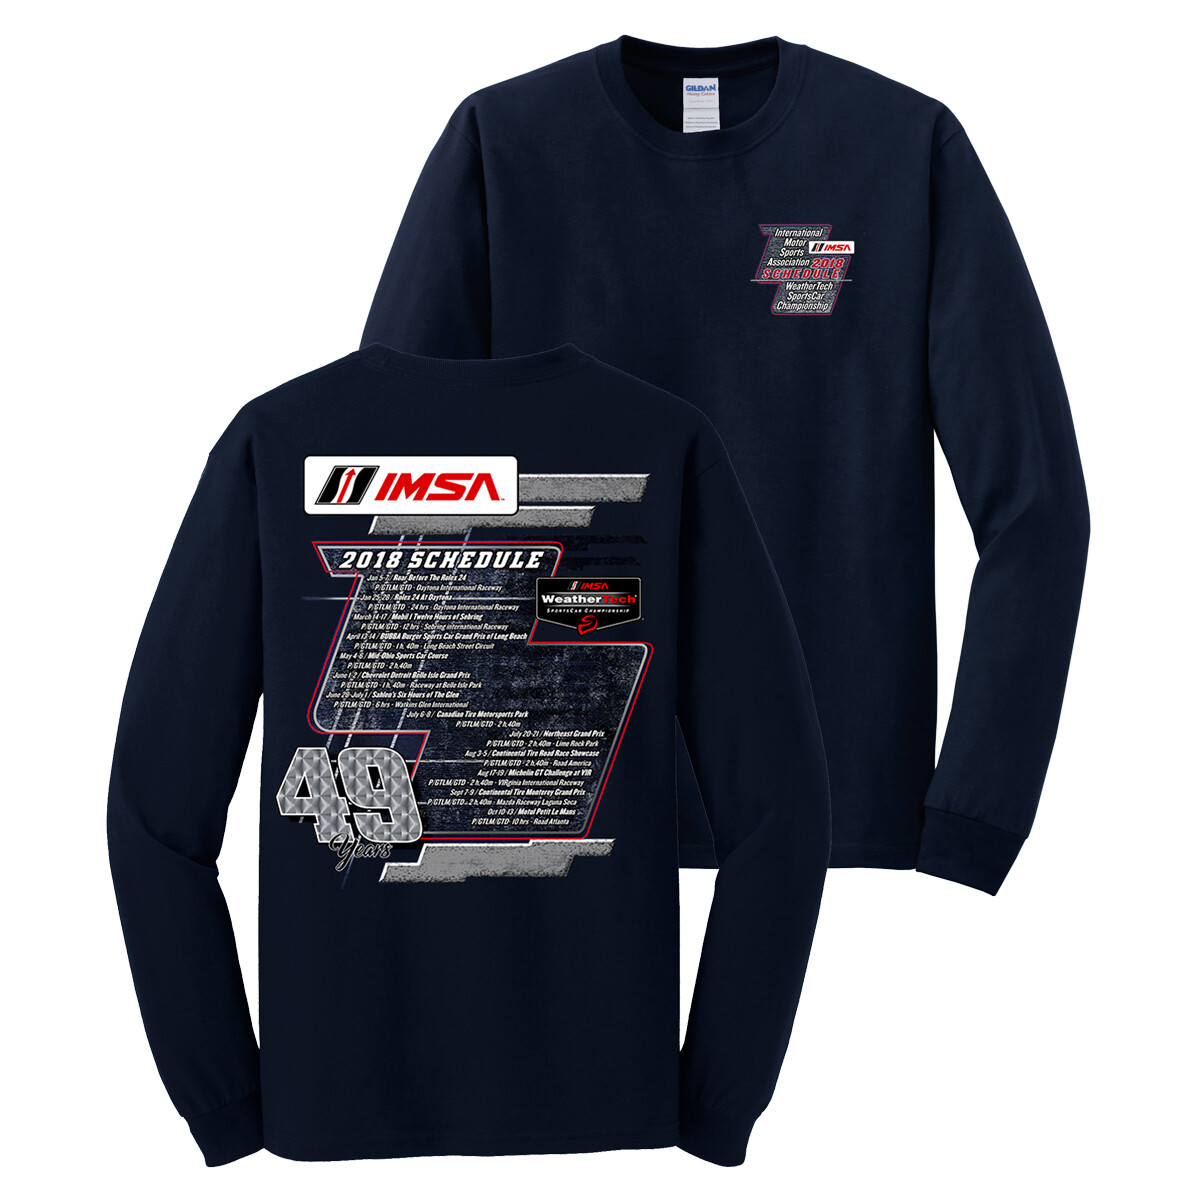 IMSA Long Sleeve Schedule Tee - Dark Blue